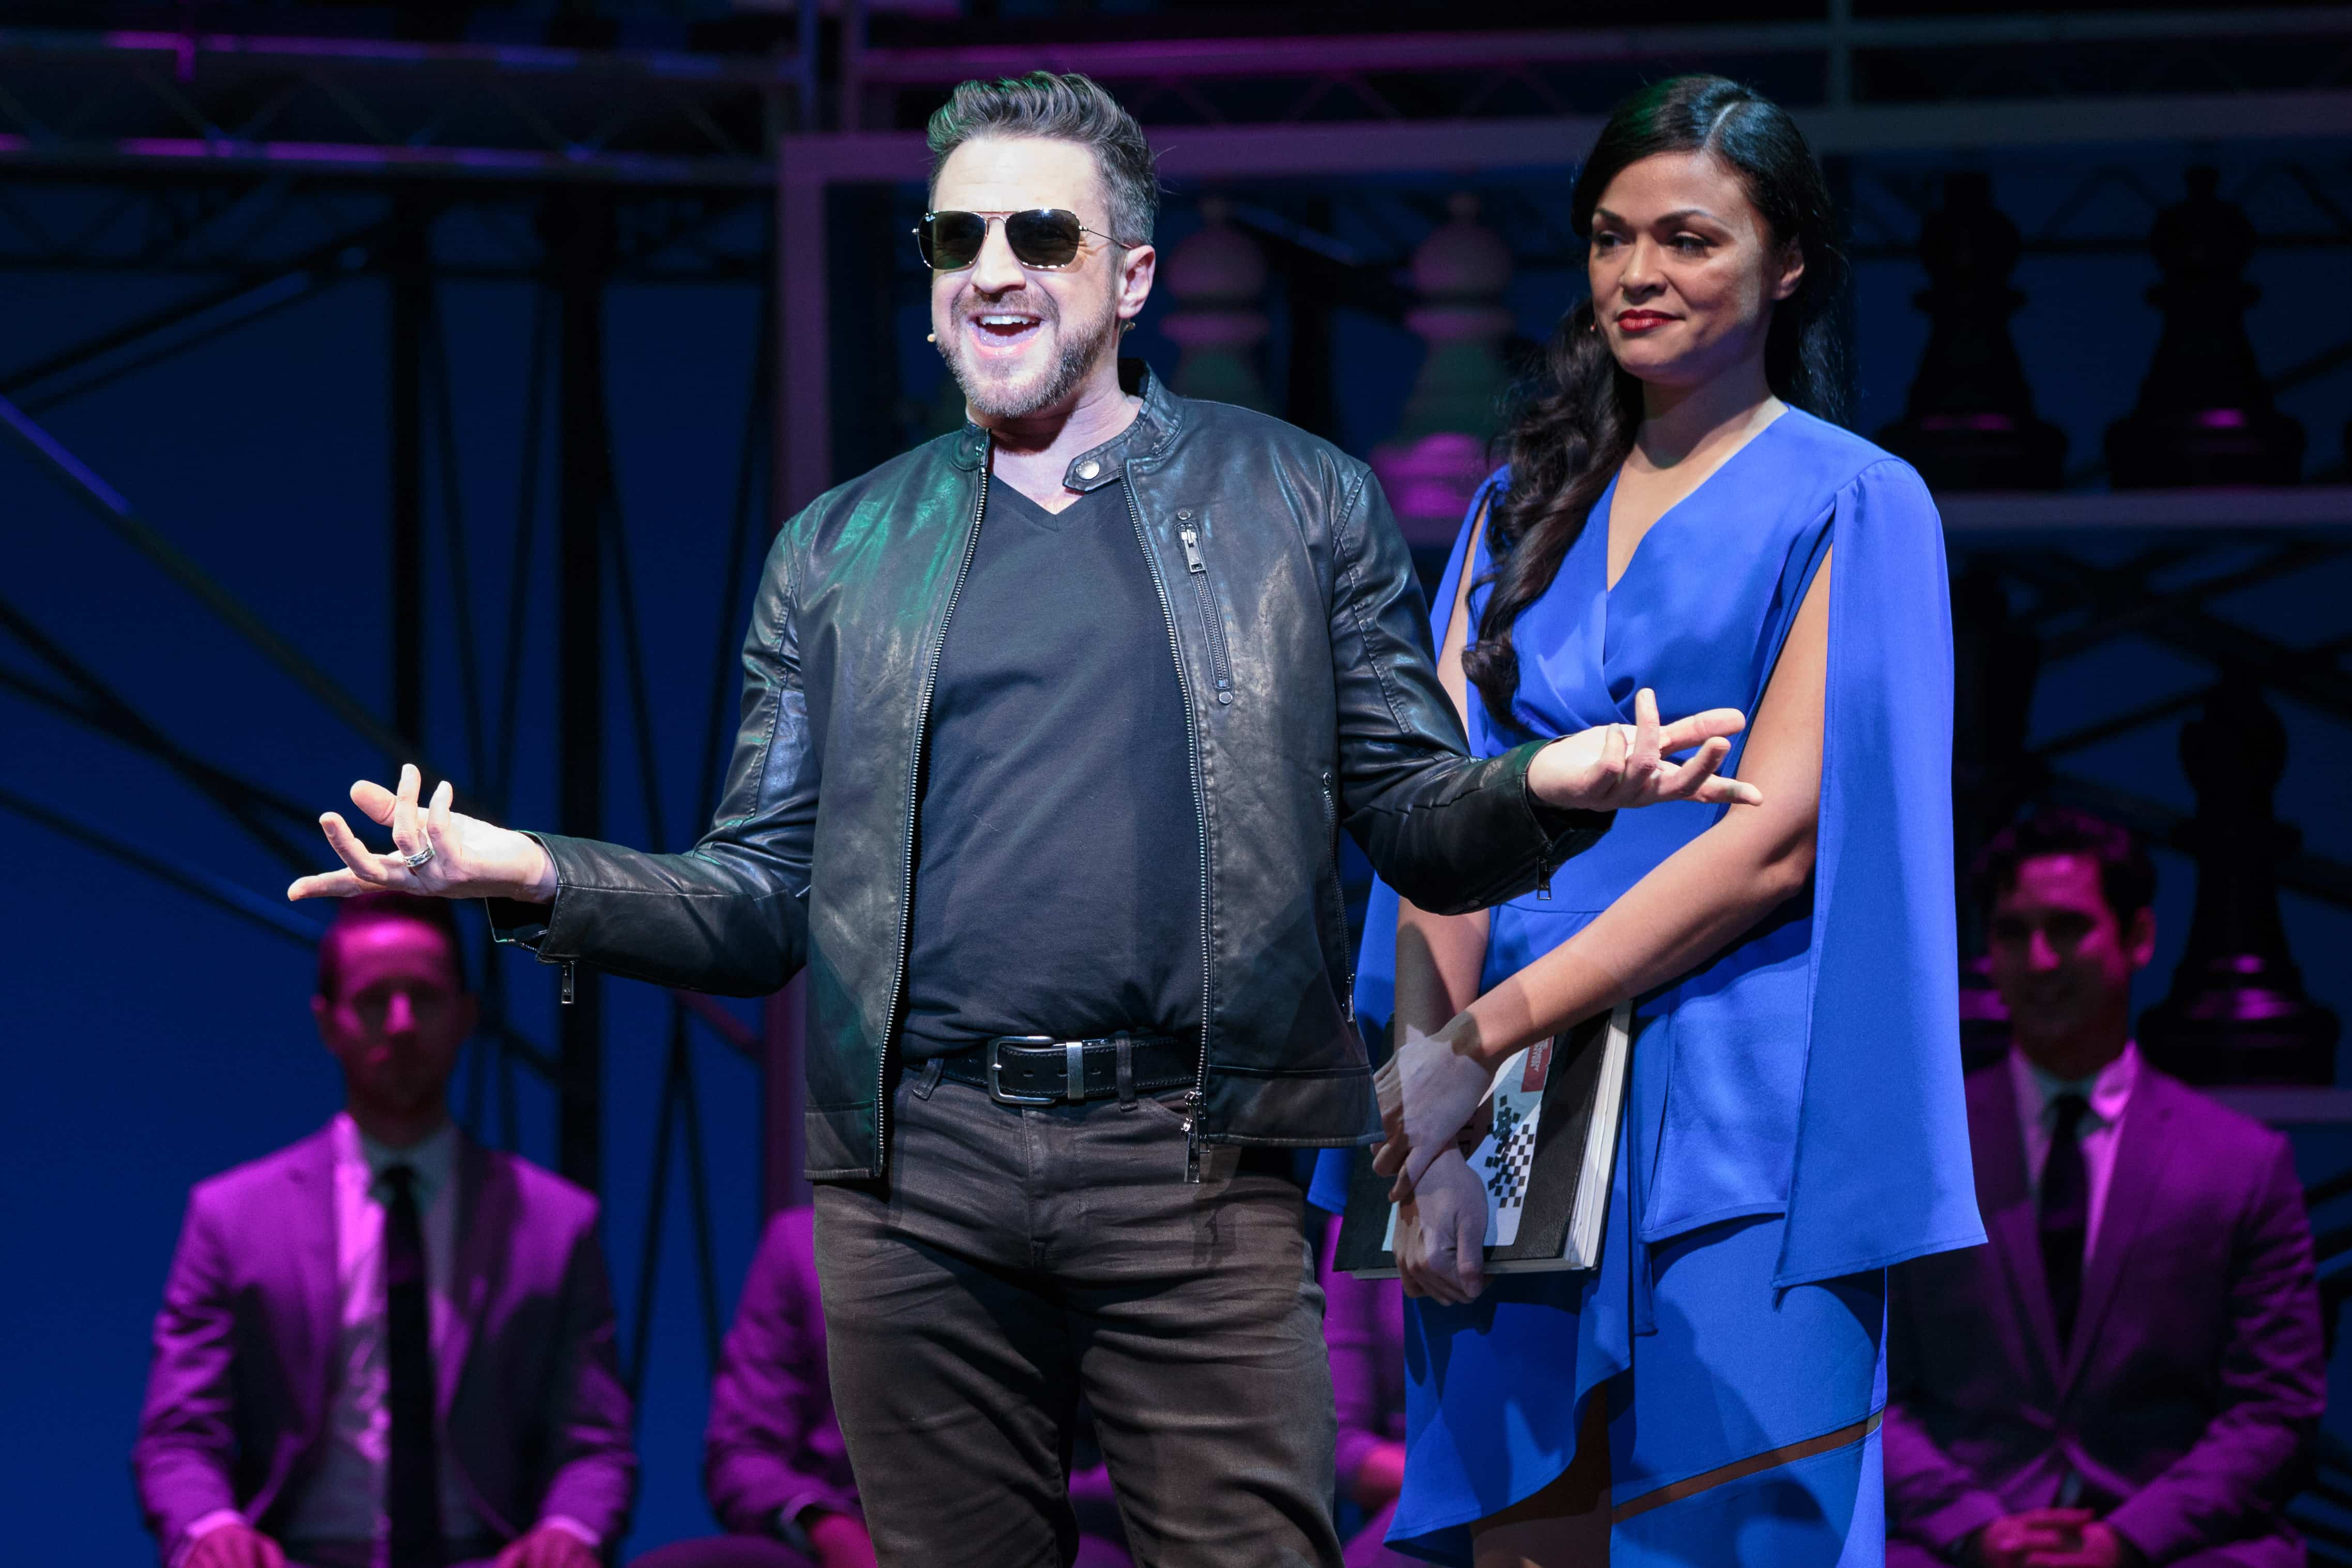 Raul Esparza and Karen Olivo in Chess. Photo by Teresa Wood.